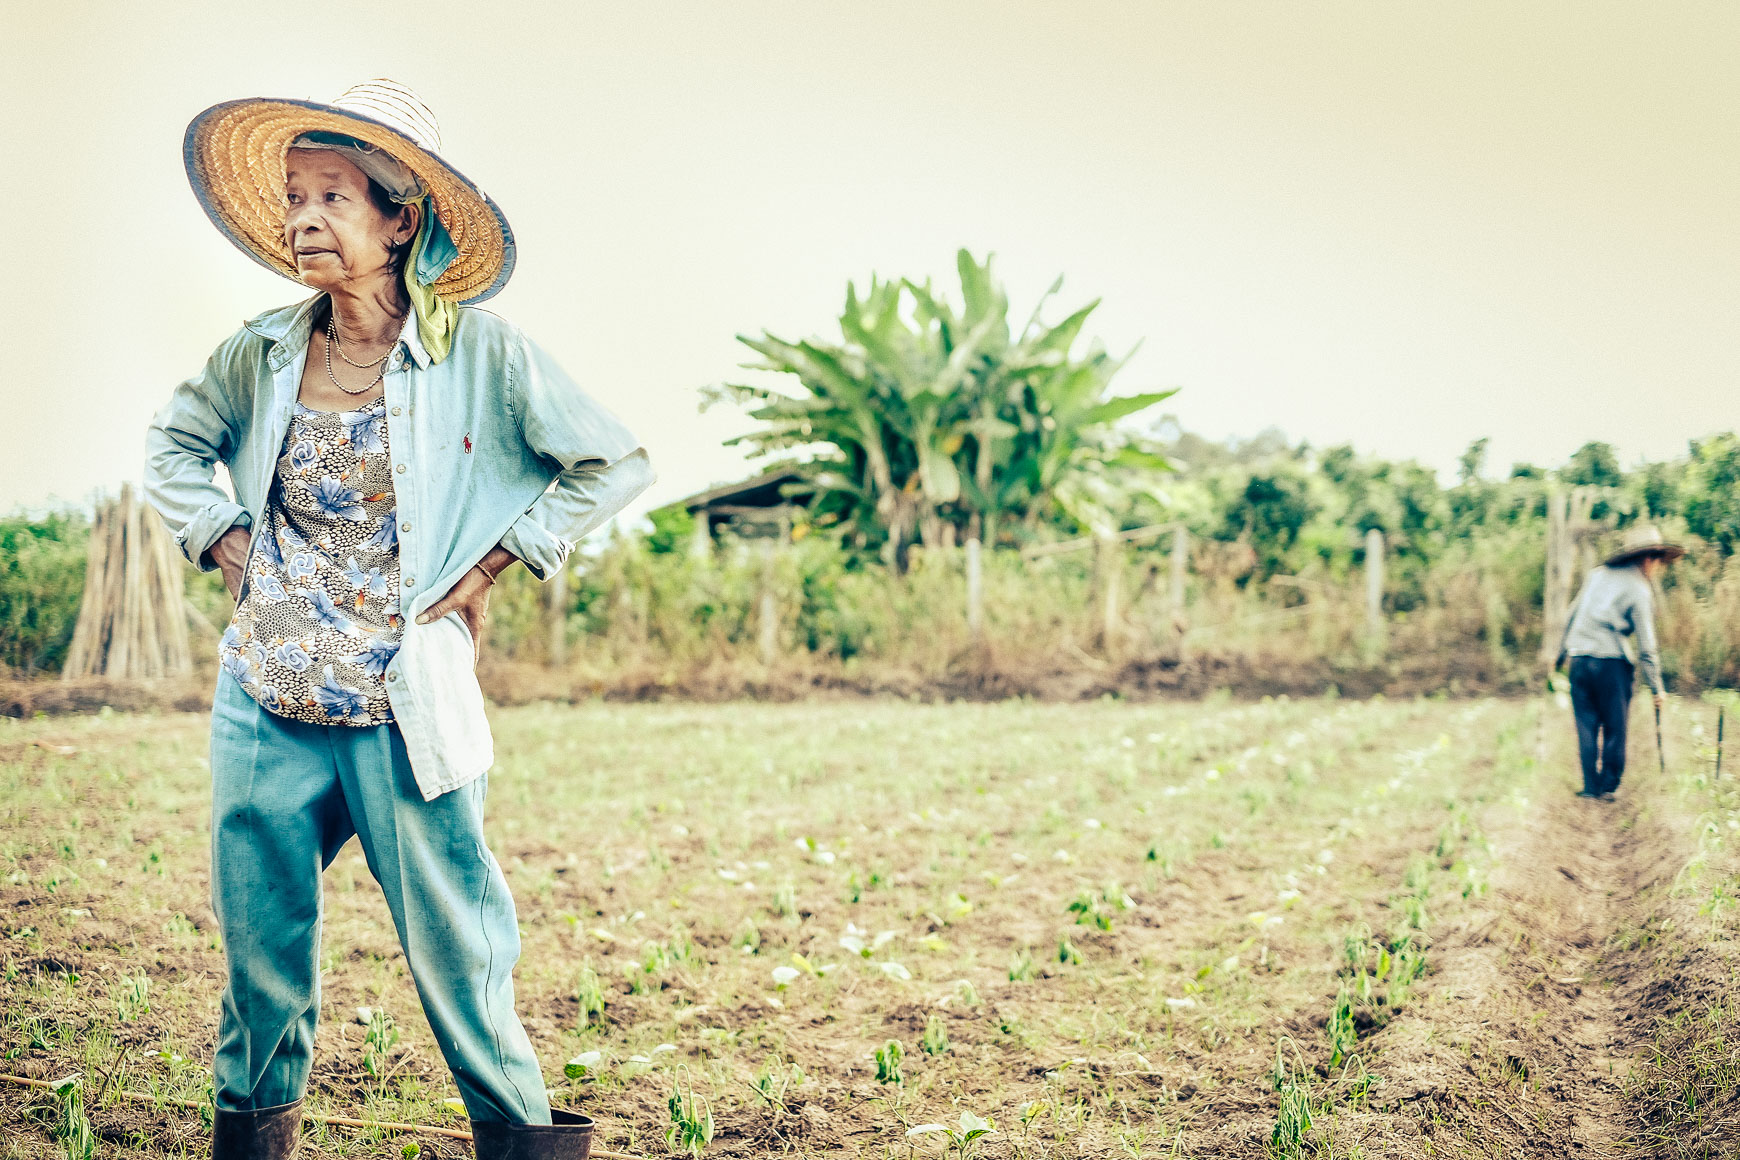 Farmer_Woman_ChiangMai.jpg